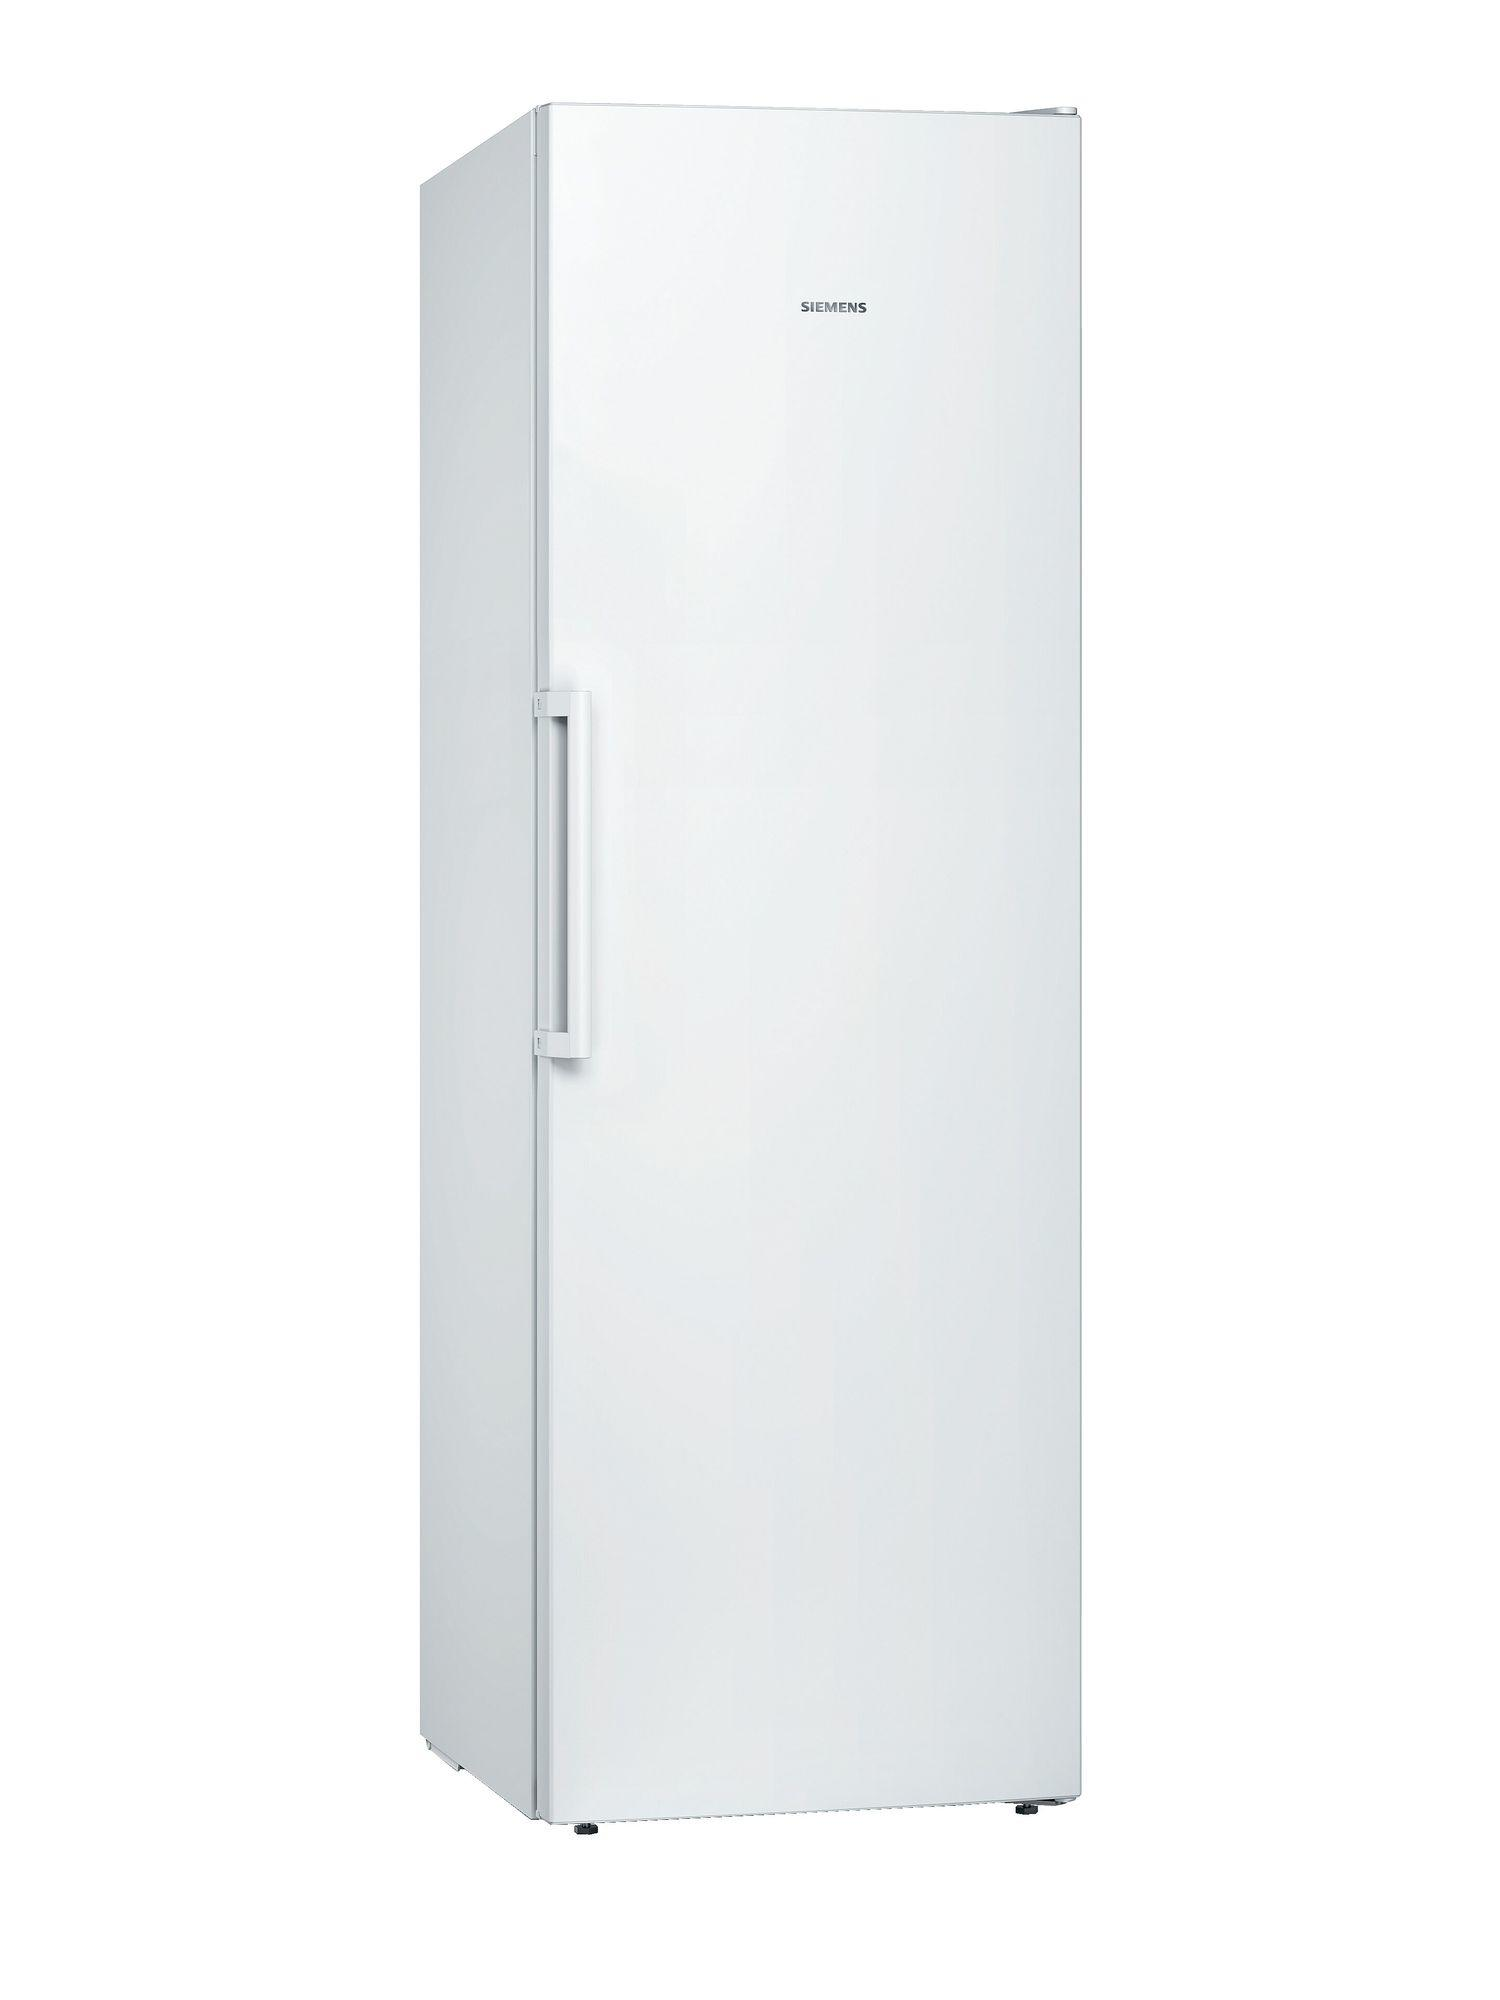 Image of iQ300 GS36NVWFV 242 Litre 60cm Single Door Freezer | White